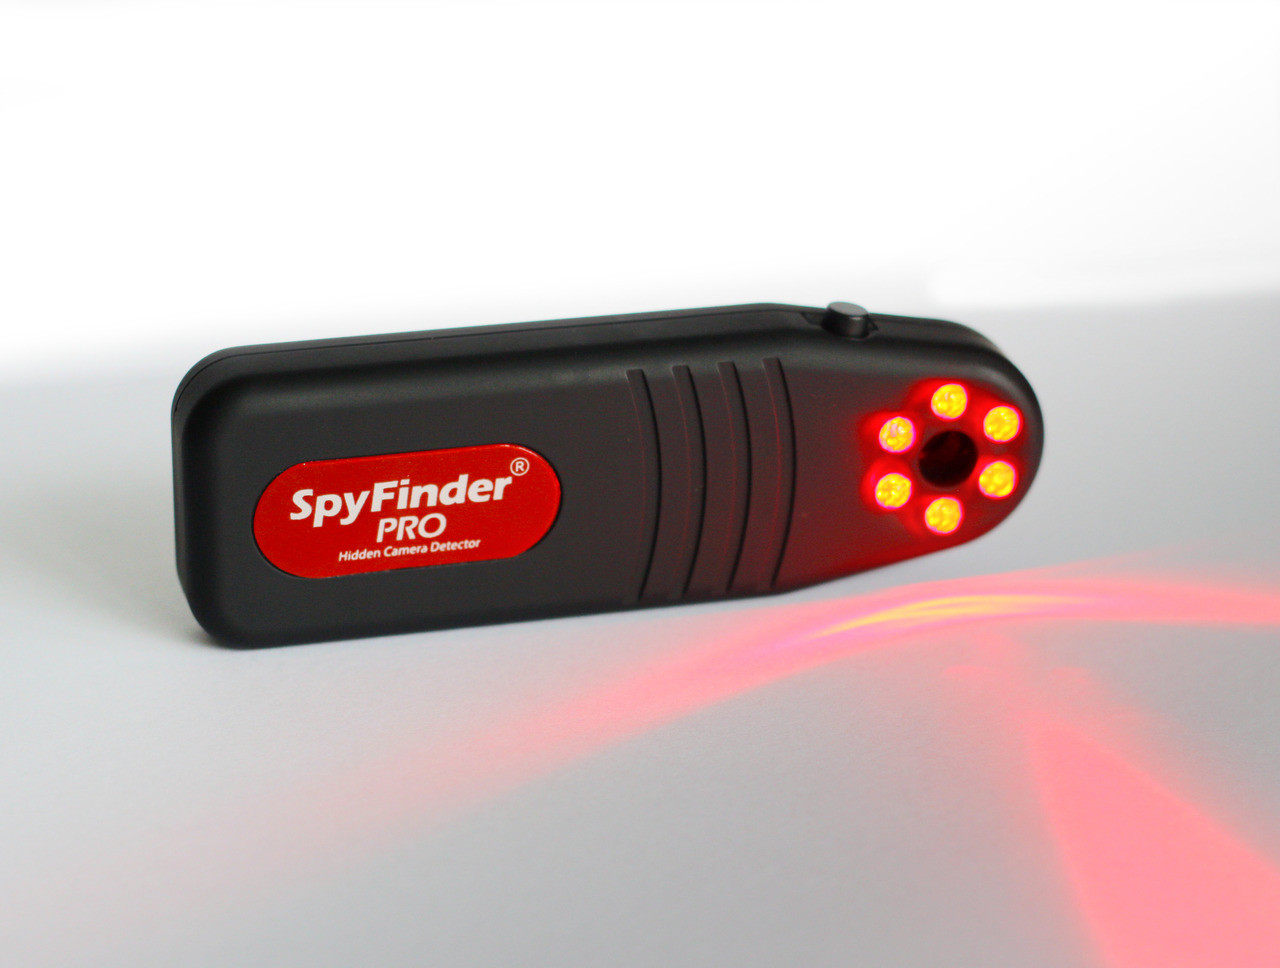 SpyFinder ® PRO Hidden Camera Detector Are Hidden Cameras Watching You Right Now?You wont believe how small hidden cameras are these days. Often no bigger than a pinhole, these tiny spy cameras are concealed inside everyday objects such as clocks, glasses, lamps, picture frames, USB chargers, keychains, desktop fans, outlets, smoke detectors, DVD players, fake water bottles, air fresheners and so much more. These tiny cameras often are built with advanced recording and offsite streaming, allowing unauthorized people to watch and record your activity, and in many cases, using your compromised activity demanding money or else threaten you with releasing the footage to the public.The news is dominated by horrified unsuspecting people getting their privacy destroyed by digital peeping toms who have installed hidden cameras in Airbnb, cruises, hotels, dressing rooms, apartments and many other locations people thought were safe. Until now, unsuspecting people had no way to know if their privacy is being violated until it's too late. Now with SpyFinder® PRO, travelers can feel safe from prying eyes when arriving to new locations.How Does It Work?In Seconds, Youll Know If Youre SecureWhen the power button is pressed on side of unit, and you look through the viewfinder, it activates six special bright-red LED strobe lights designed to bounce off the smallest of camera lenses. The tiny camera lens will appear to blink back at you as a reflection off camera lens itself , instantly giving away its location as you scan the area around you. It doesnt matter if the camera is turned on or off, recording or not...even if its a non-working camera, the blinking effect will clearly show you the presence of a camera lens which is almost impossible to detect with the naked eye. Knowing where the camera is located will allow you to take immediate action to prevent unauthorized recording of activity. In addition, there are 3 LED intensity levels which helps hone in on camera lenses which could be hidden behind different surfac